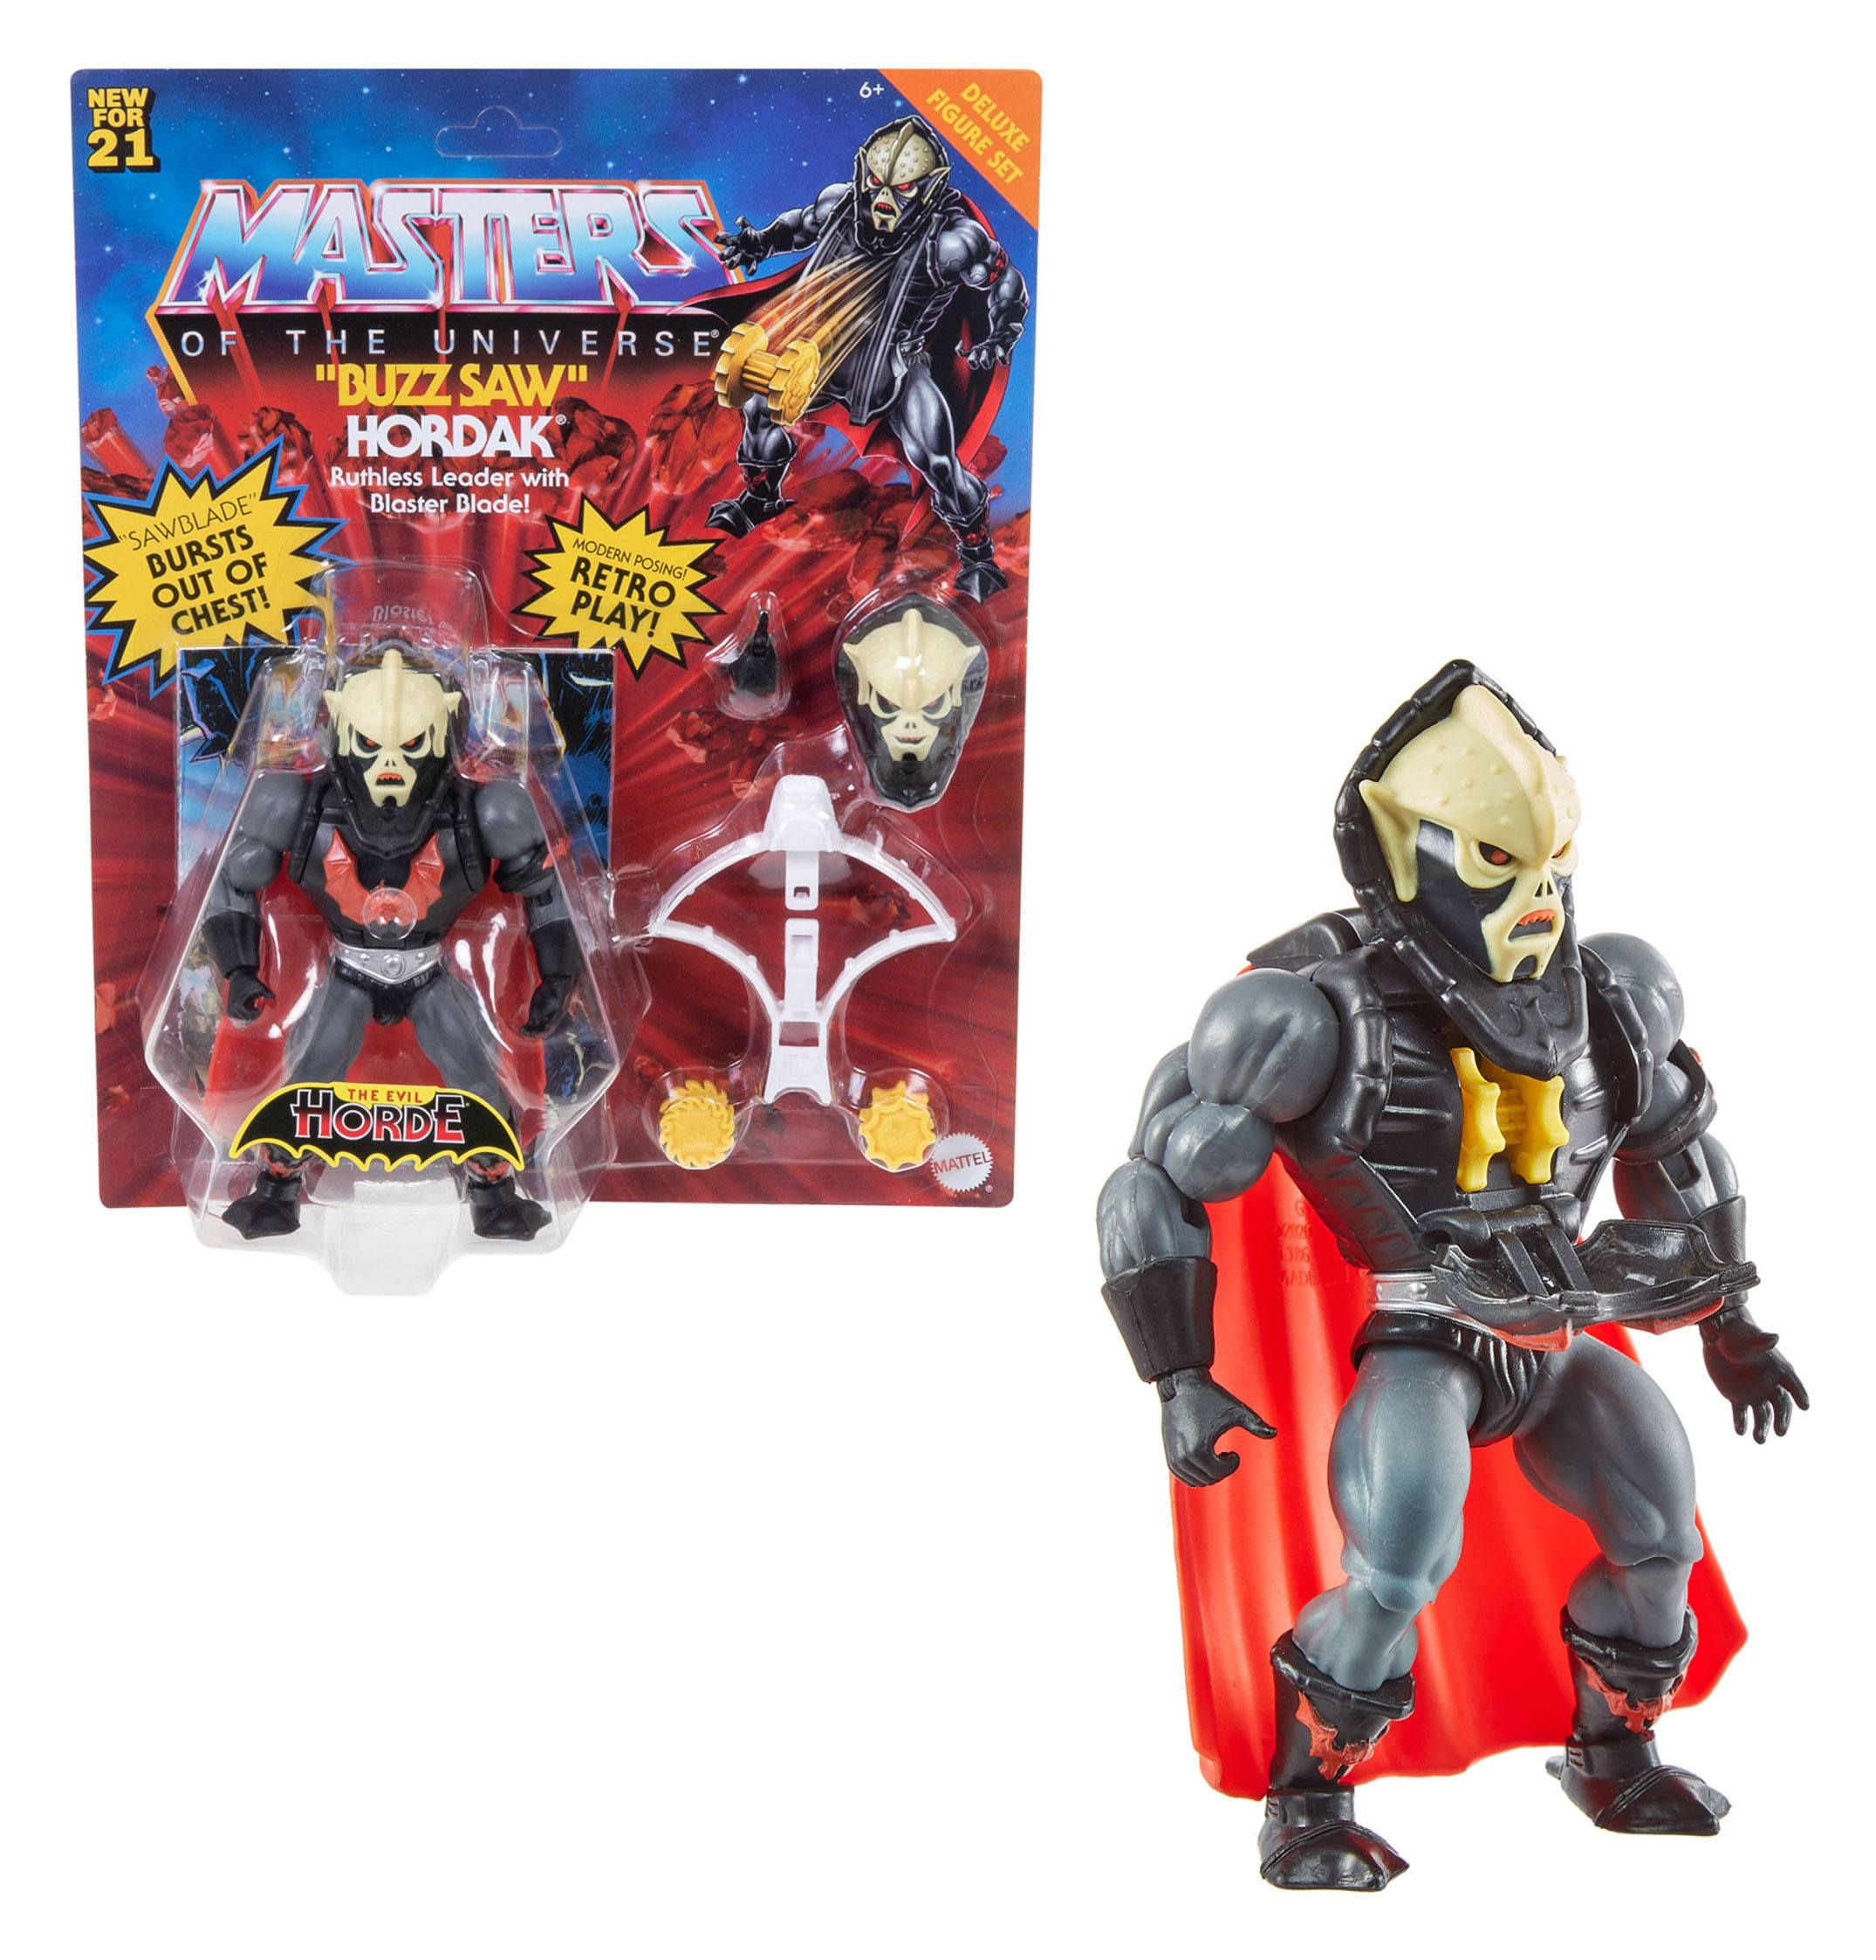 Masters of the Universe Deluxe Actionfigur 2021 Buzz Saw Hordak 14 cm MATTGYY32 0887961982893